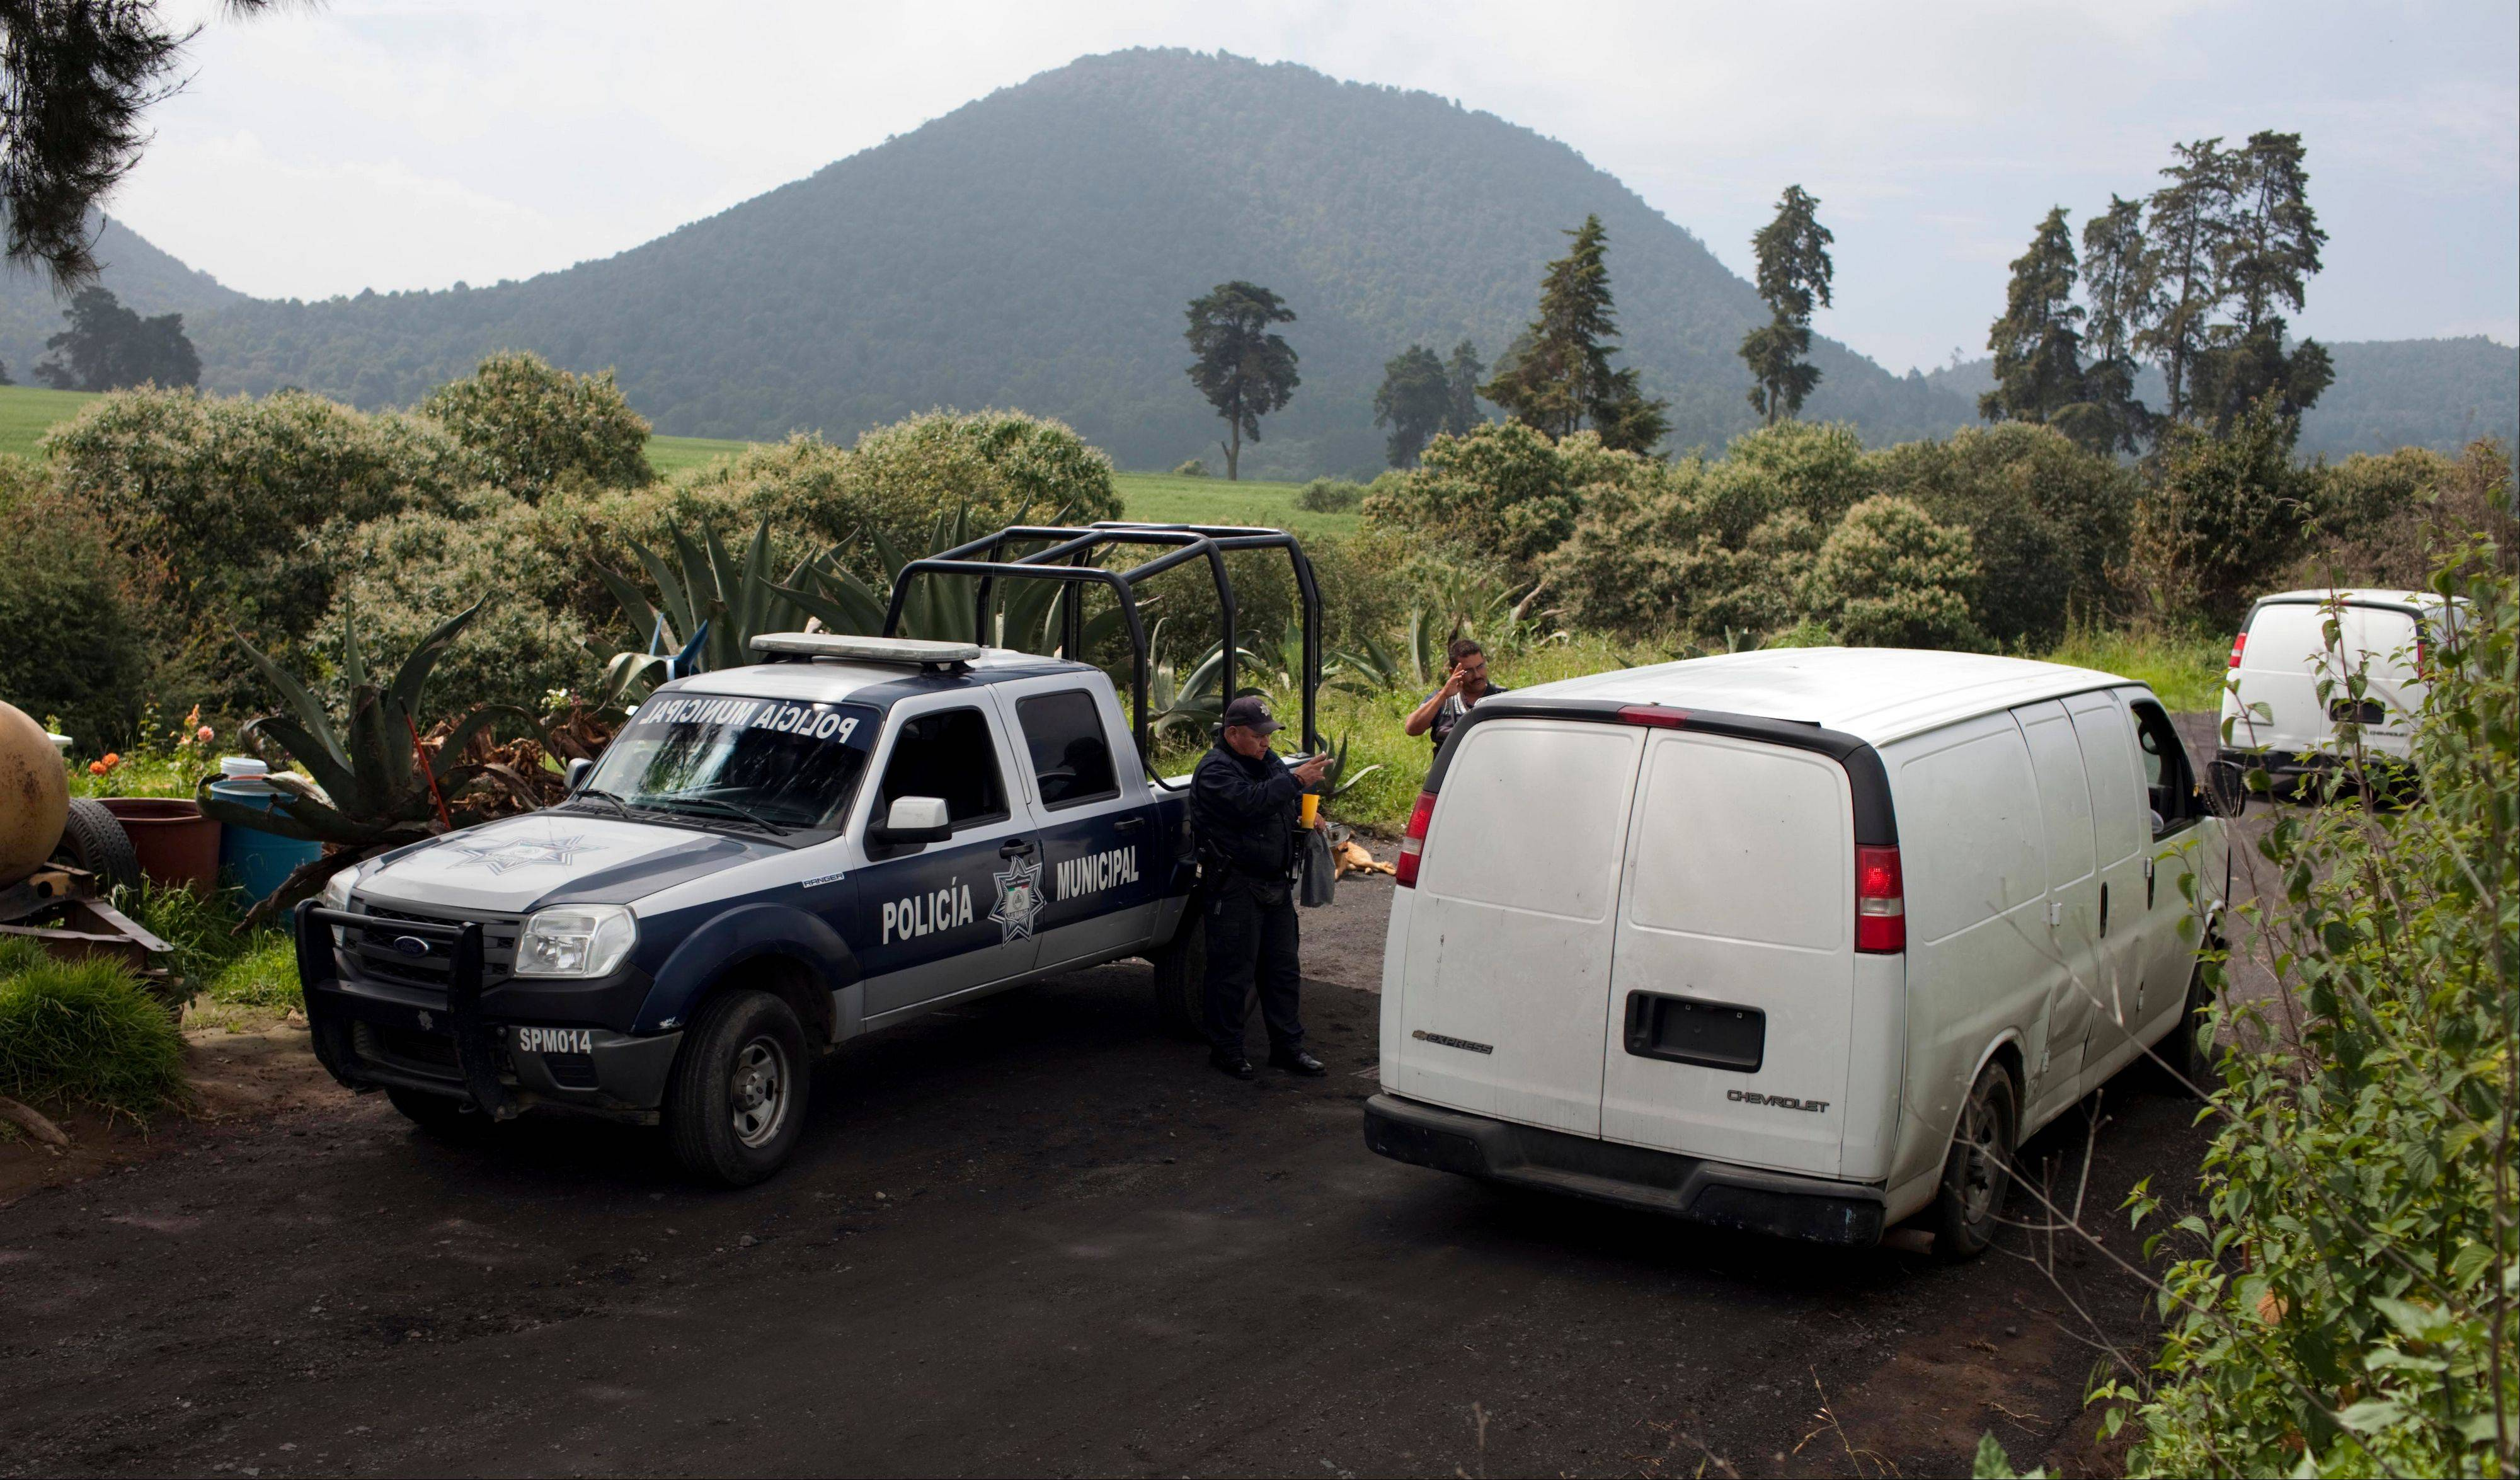 Vans belonging to Mexican authorities arrive at the entrance of a ranch where a mass grave was found in Tlalmanalco, Mexico.